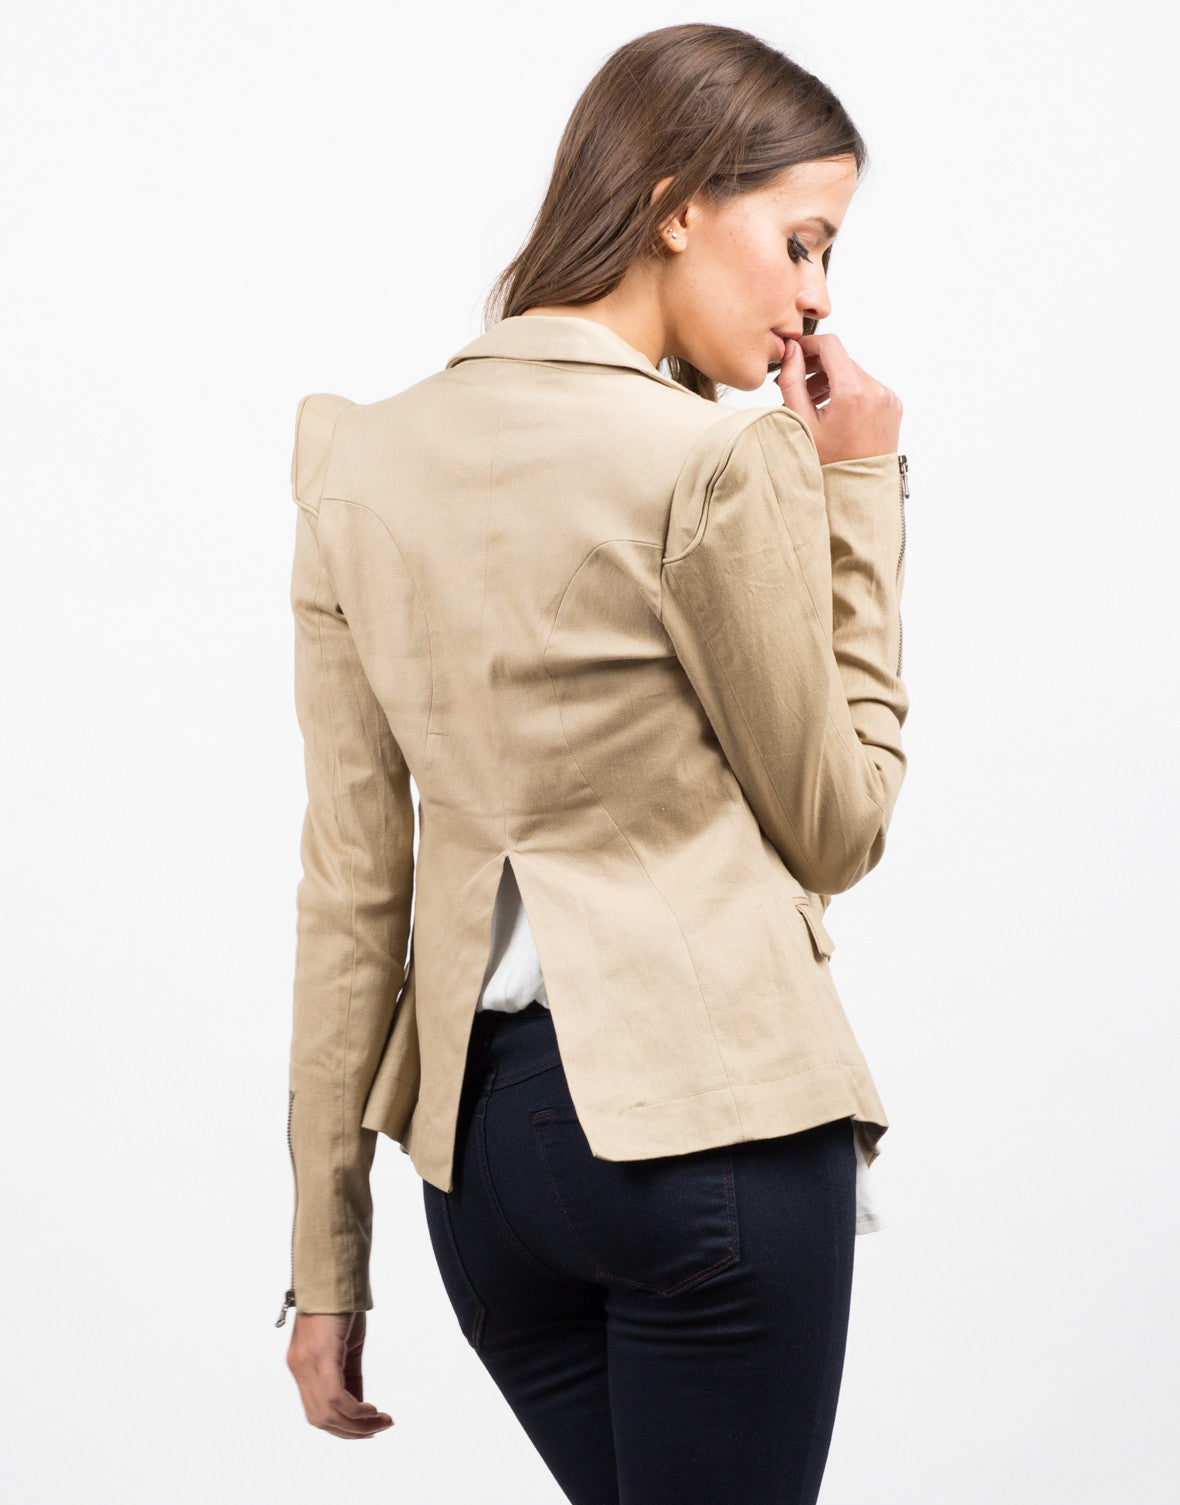 Back View of Structured Blazer